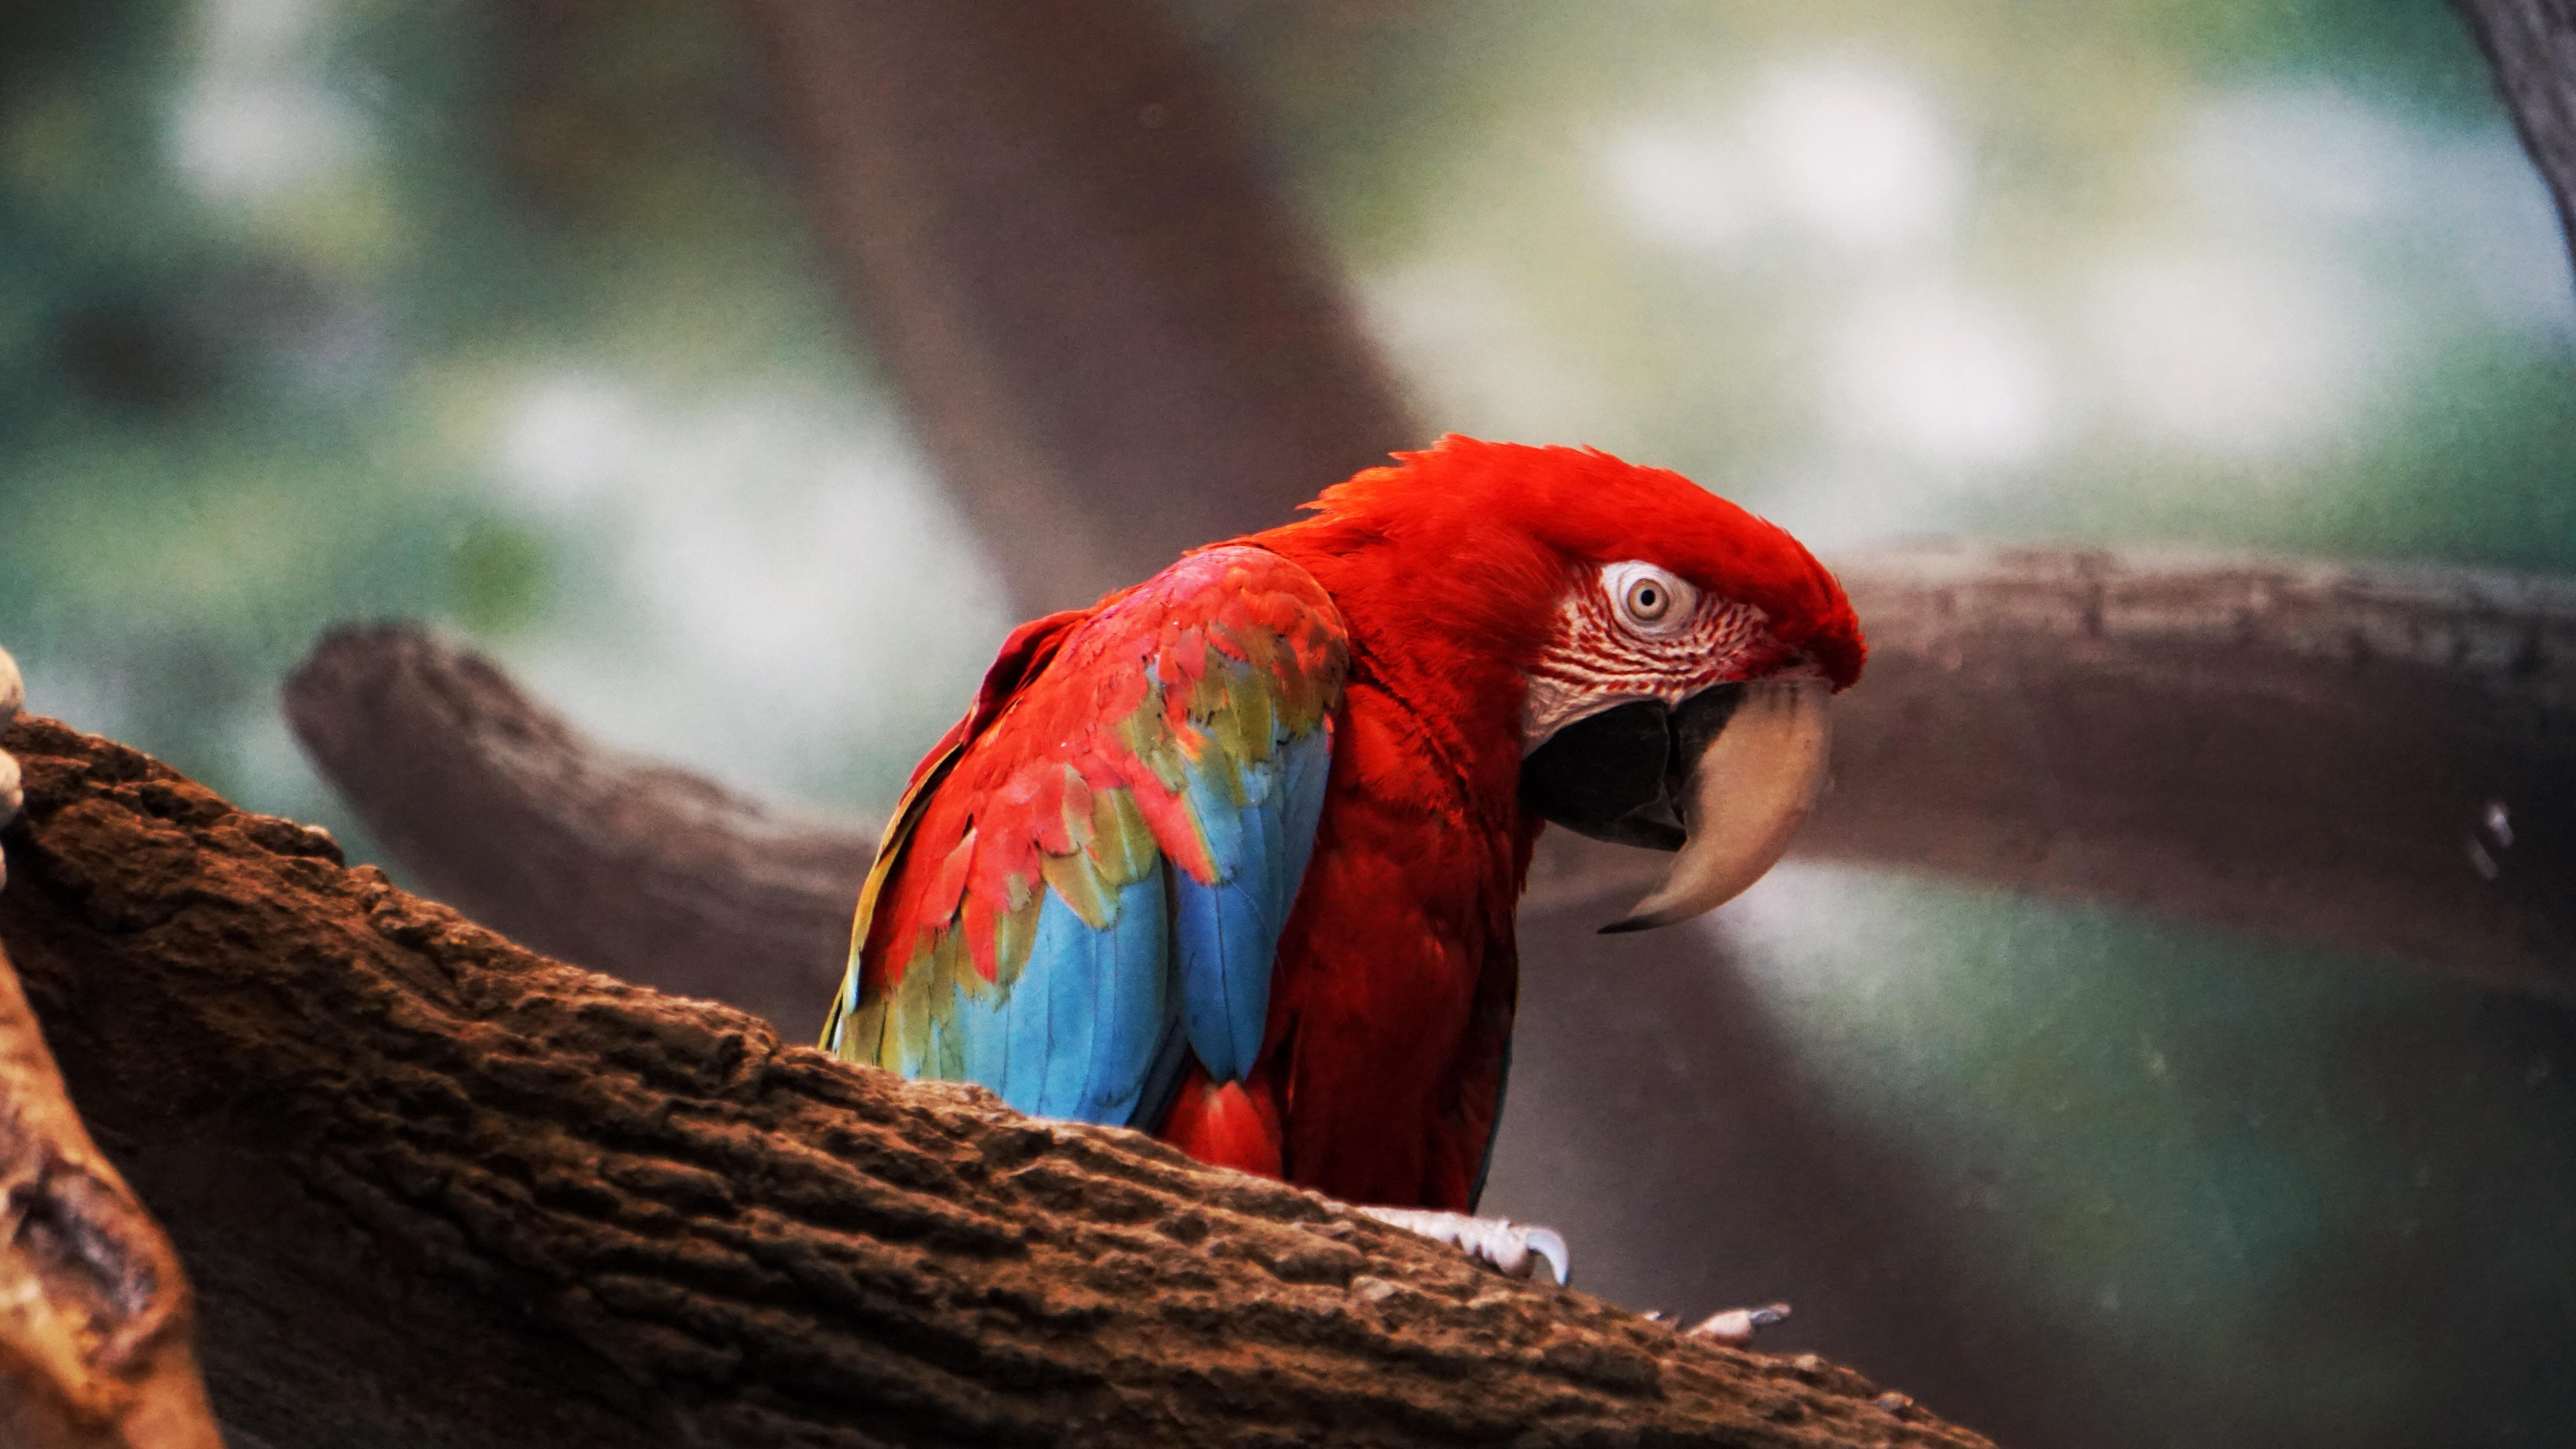 Macaw Parrot Closeup, HD Birds, 4k Wallpapers, Image, Backgrounds